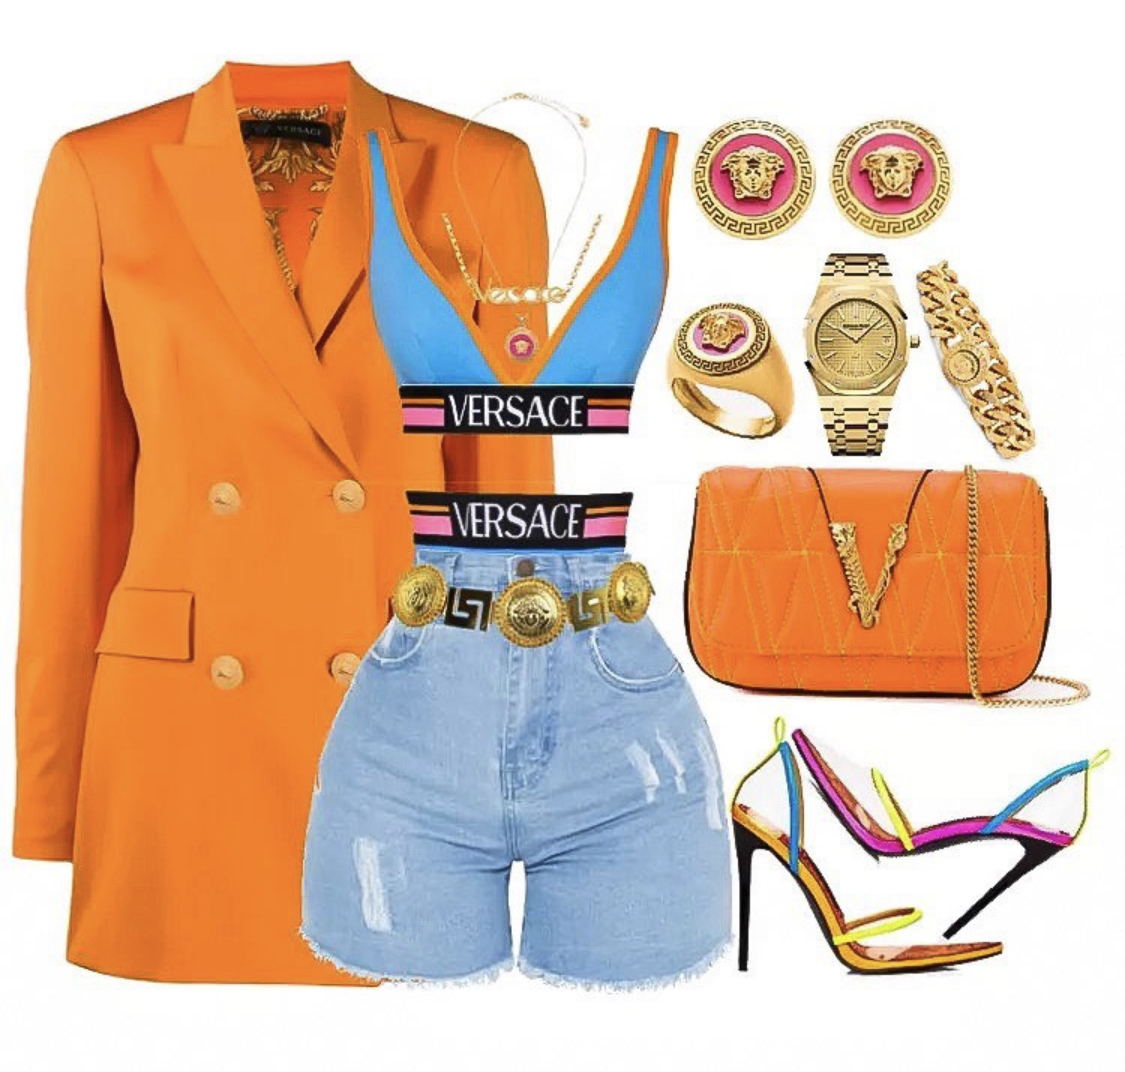 Outfit_Inspiration_Versace_Orange_Blazer_Pretty_Little_Thing_Denim_Shorts_and_Jessica_Rich_Neon_Shoes